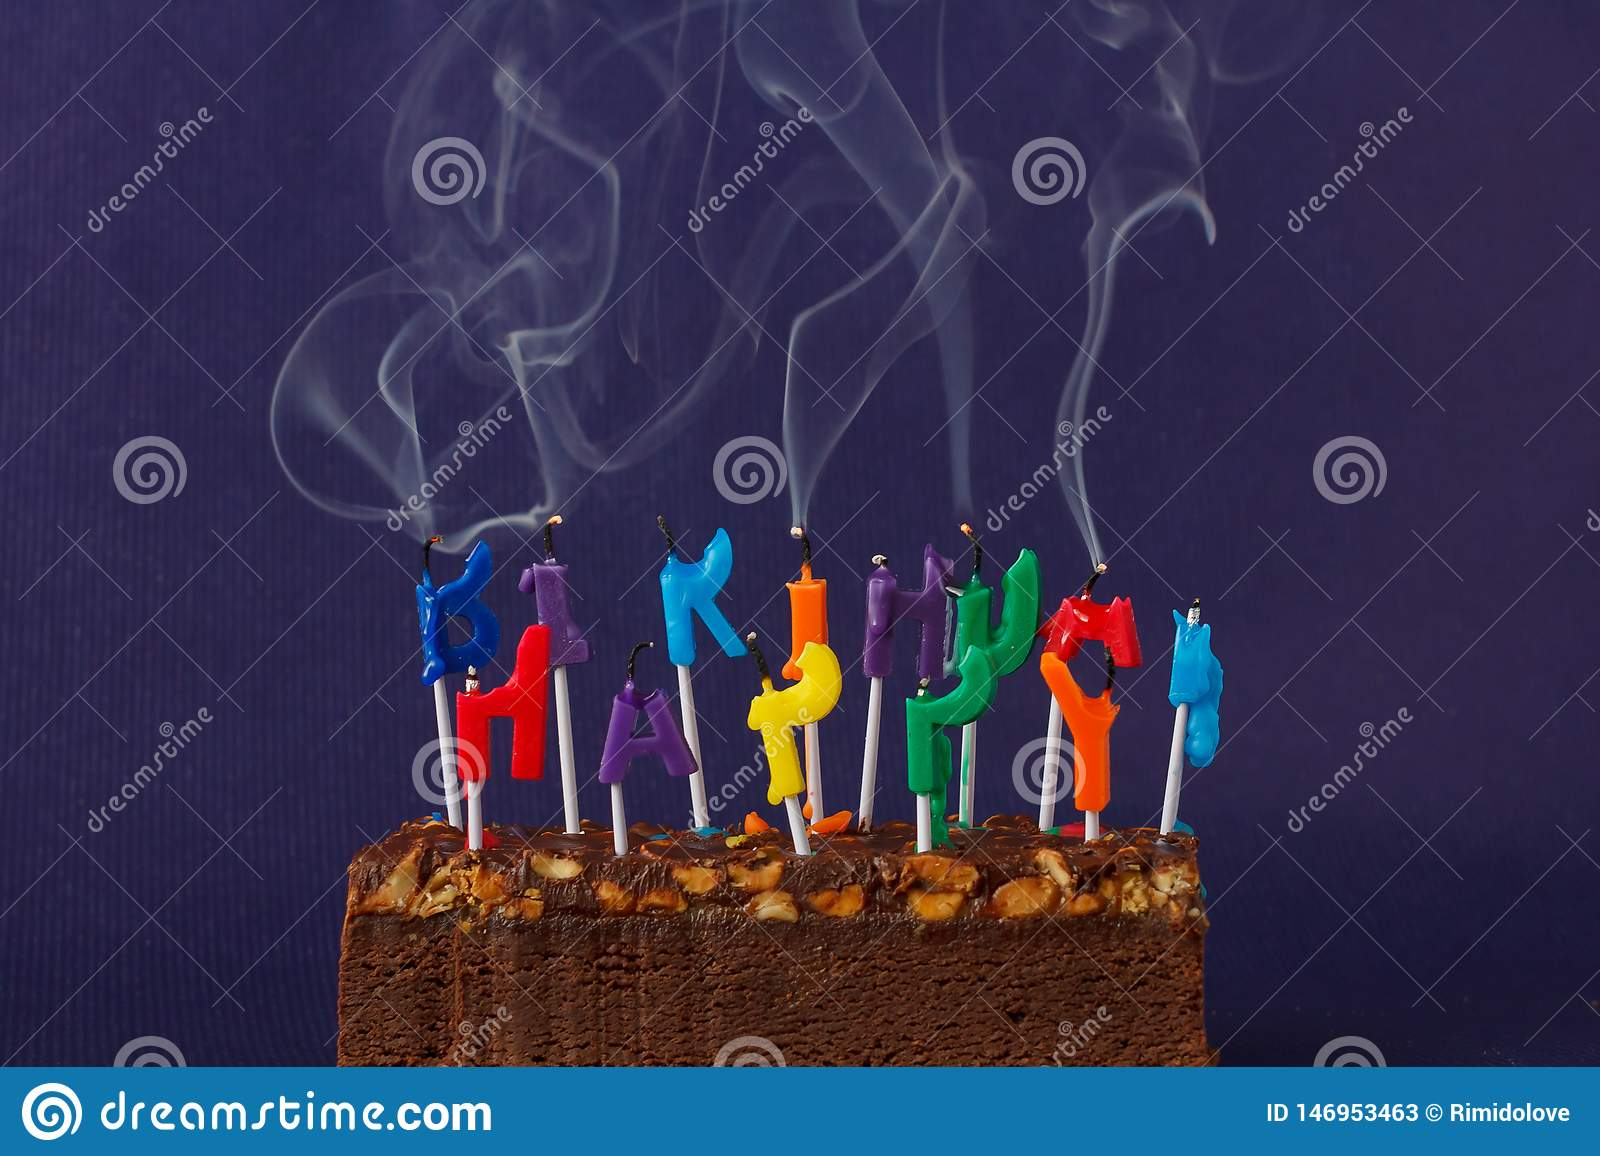 Happy Birthday Brownie Cake with Peanuts, Salted Caramel and Colorful Unlighted Smoking Candles on the Violet Background. Copy